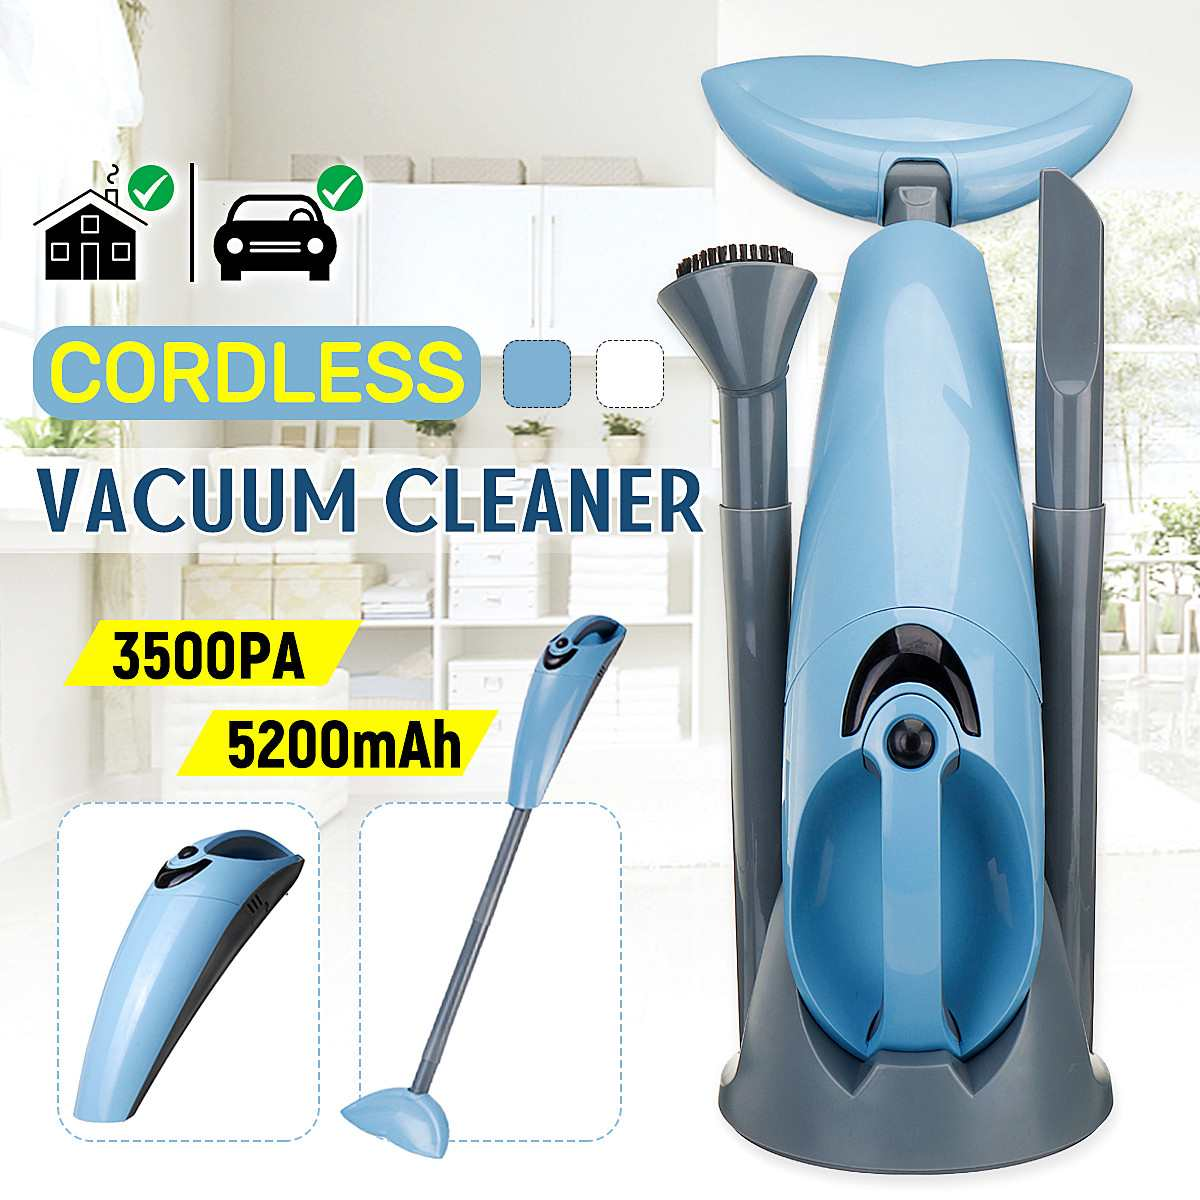 New 100W Handheld Wireless Vacuum Cleaner Portable Home Dust Collector and Aspirator HEPA Filter Strong Suction Cleaning Tool